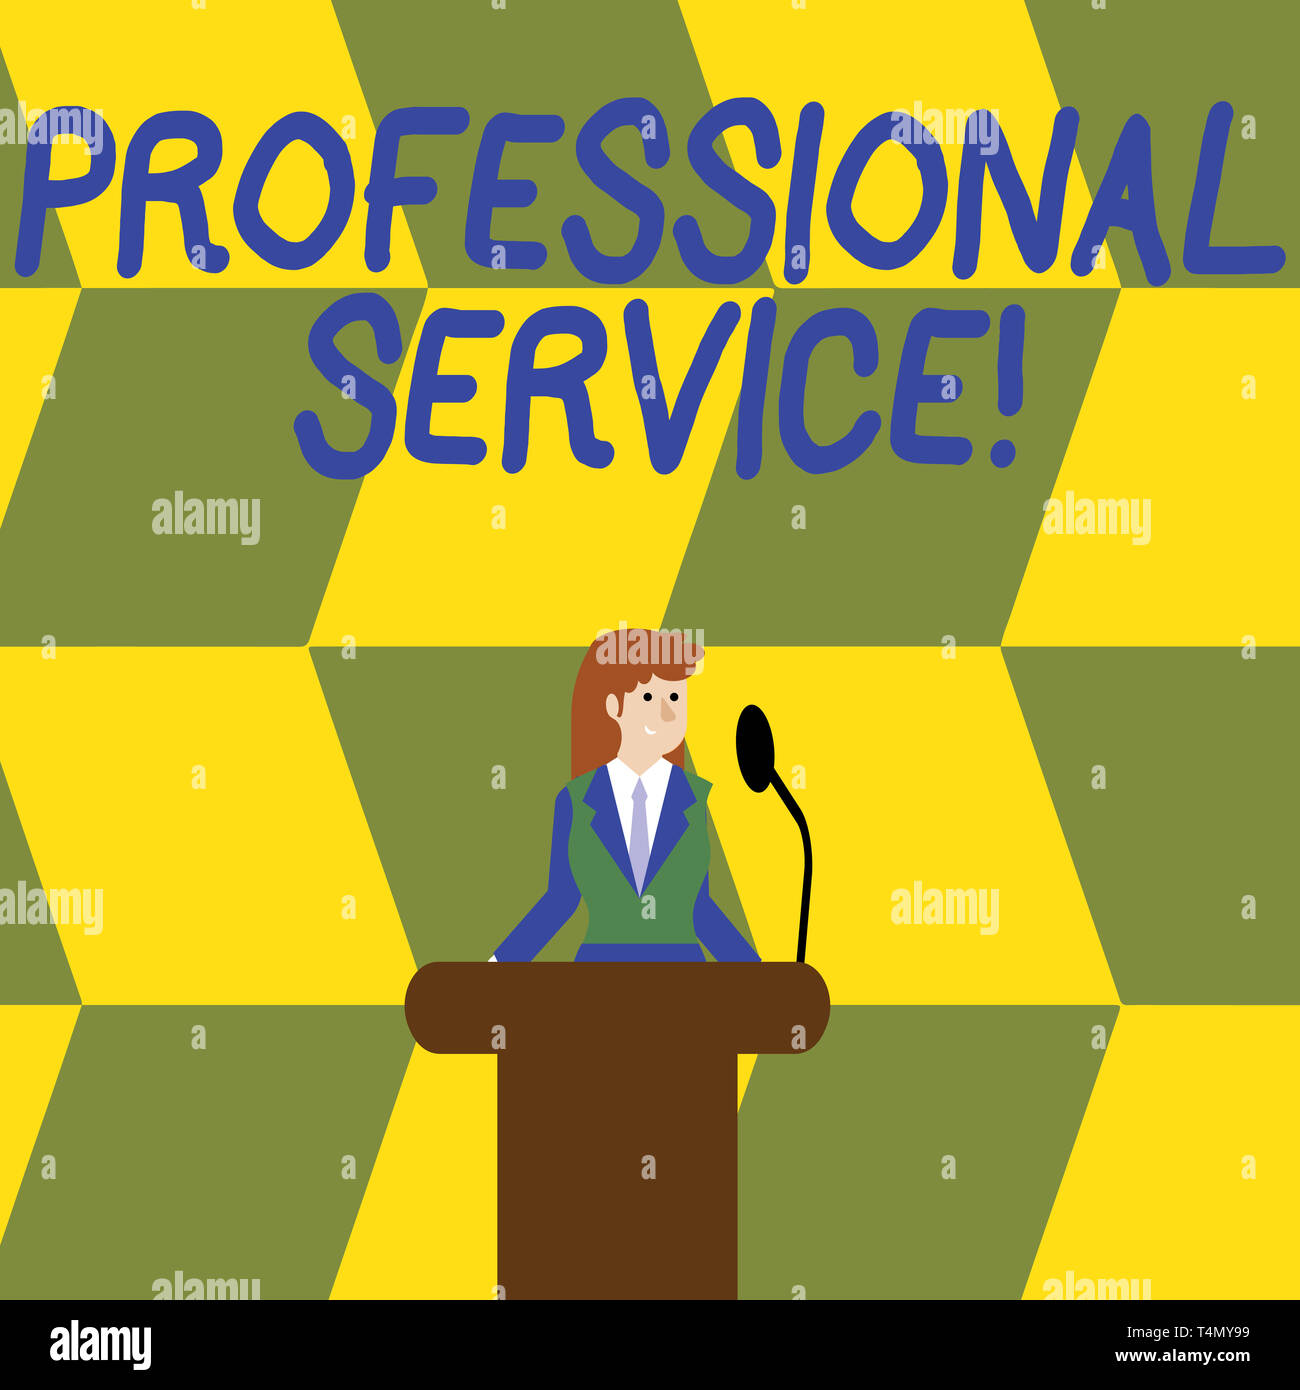 Writing note showing Professional Service. Business concept for requiring special training in the arts or sciences Businesswoman Behind Podium Rostrum - Stock Image